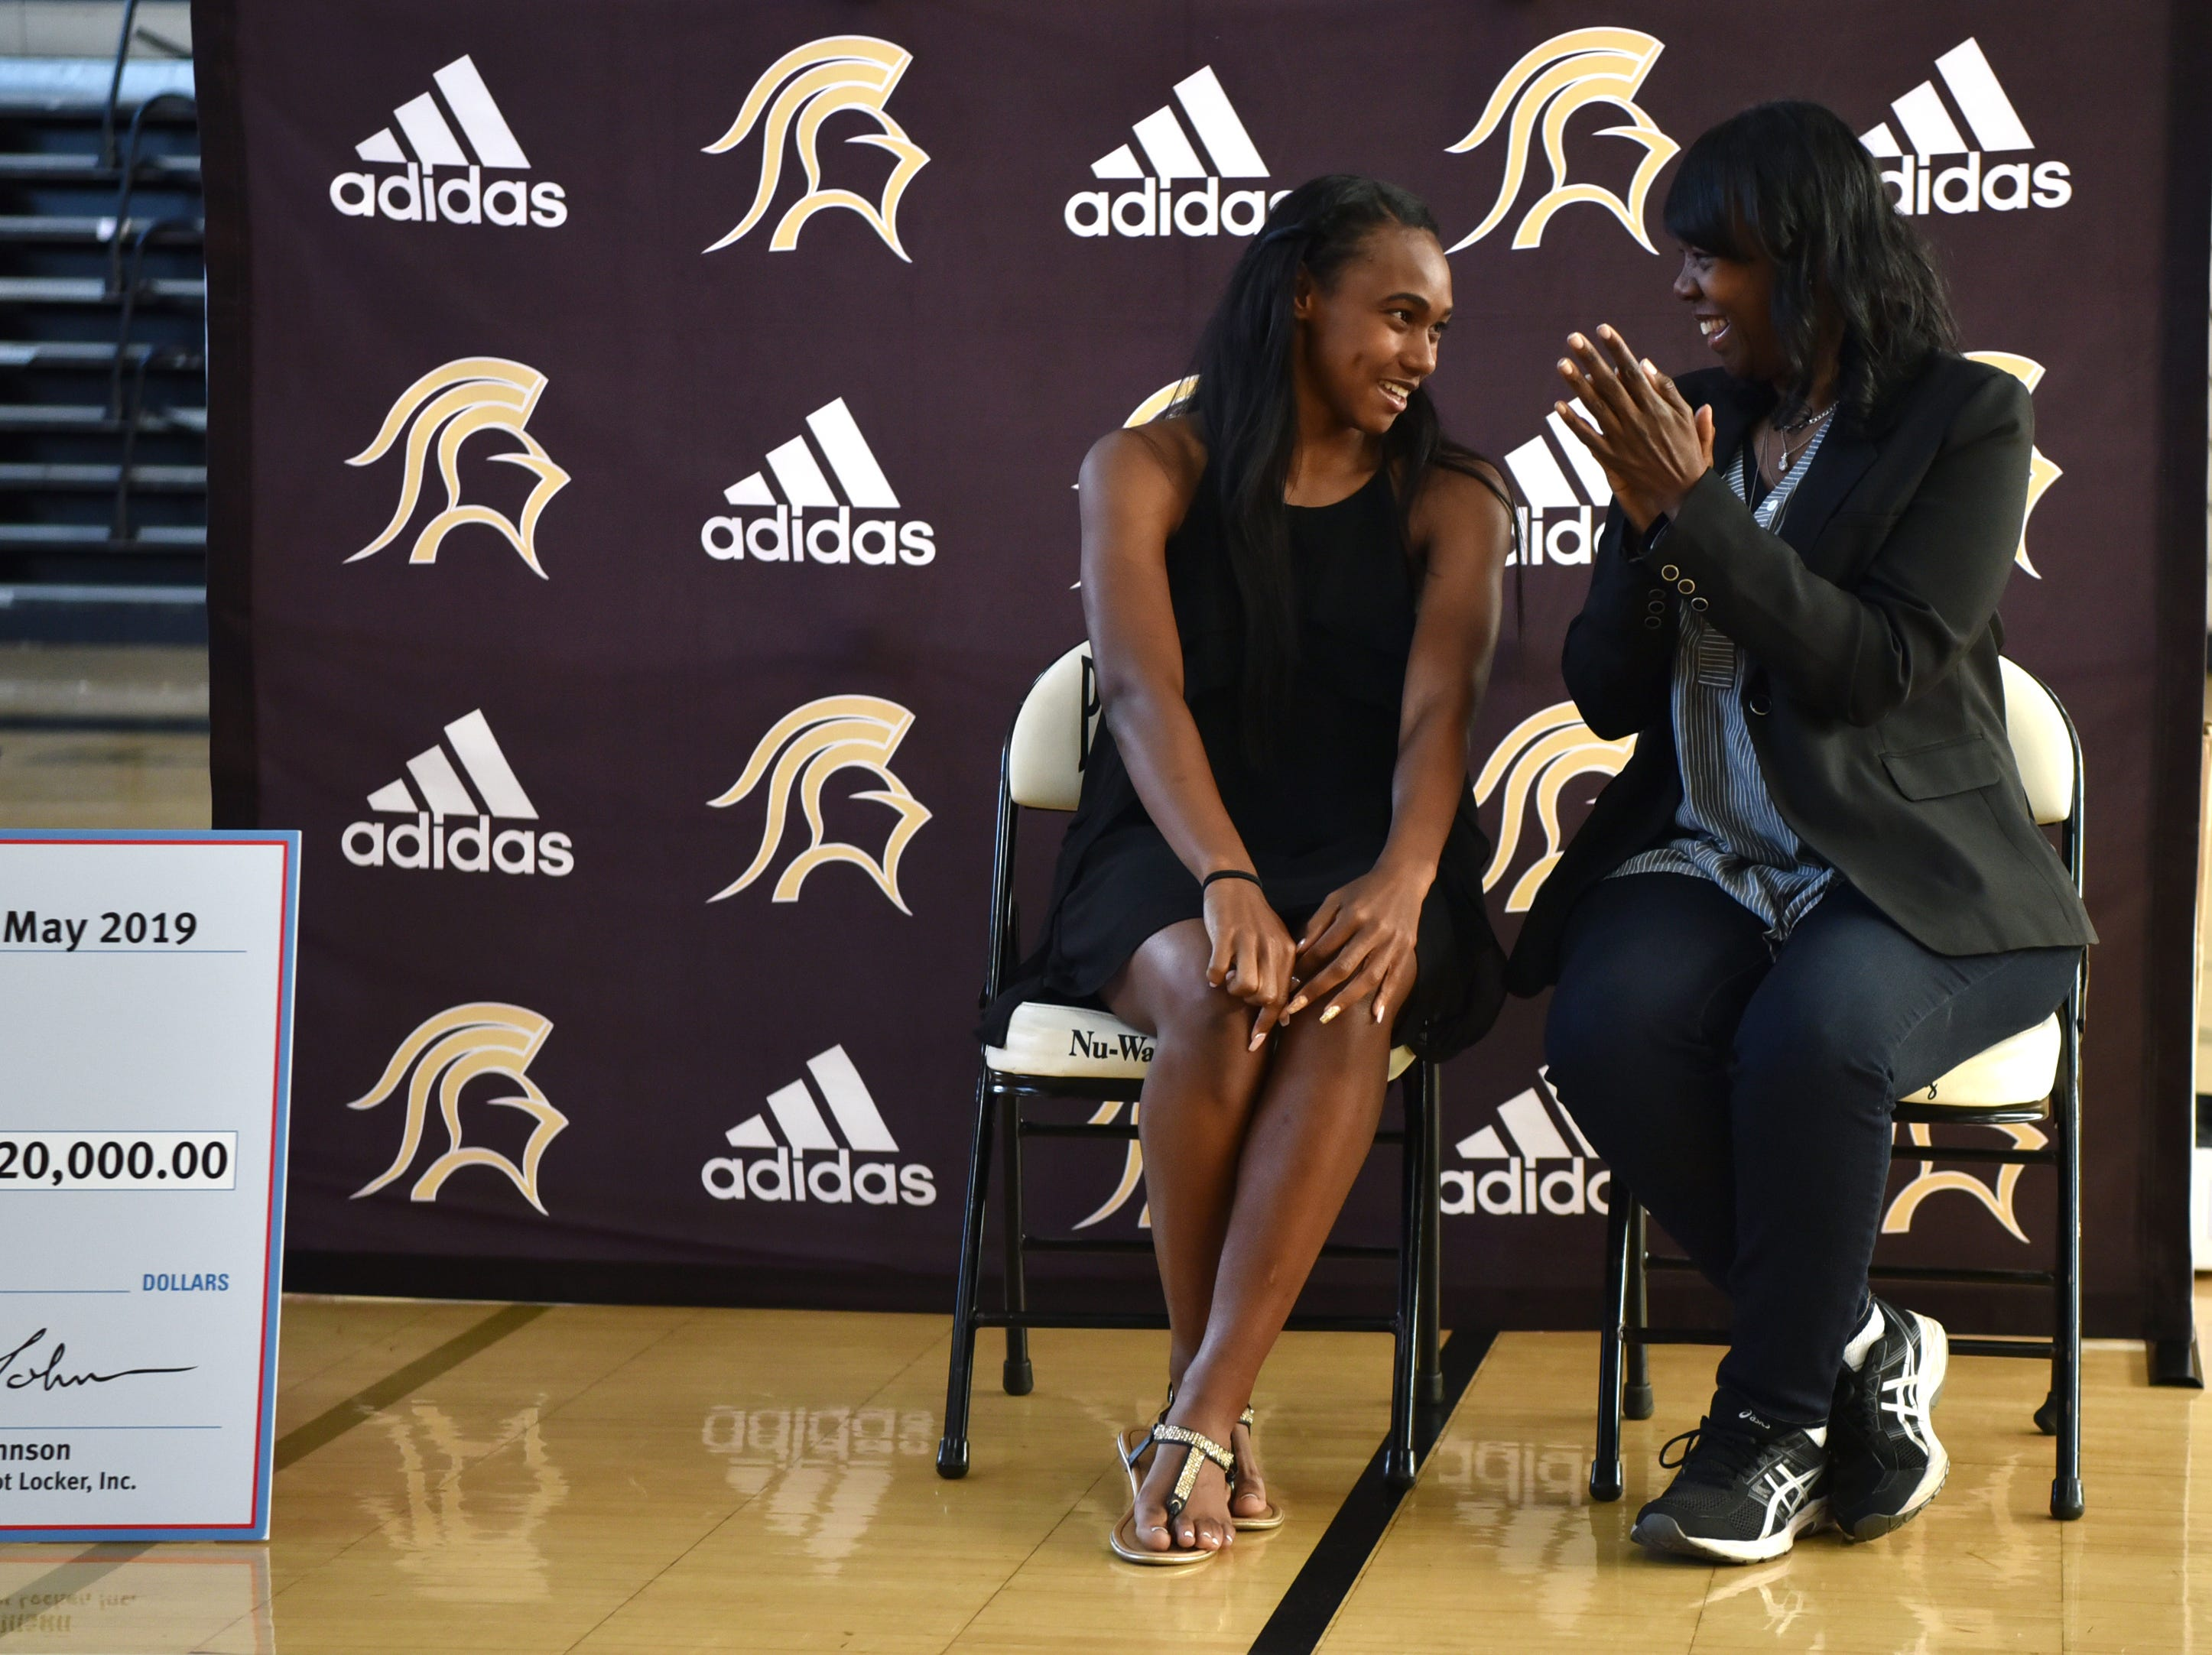 Paramus Catholic senior Kennedee Cox and her mother Beverlee Garvin, and enjoy the moment after Cox receives $20,000 from the Foot Locker Scholar Athletes Program. Cox, of Teaneck, runs track at Paramus Catholic and  Foot Locker representatives surprised Cox with the announcement at school on Wednesday, May 15, 2019.